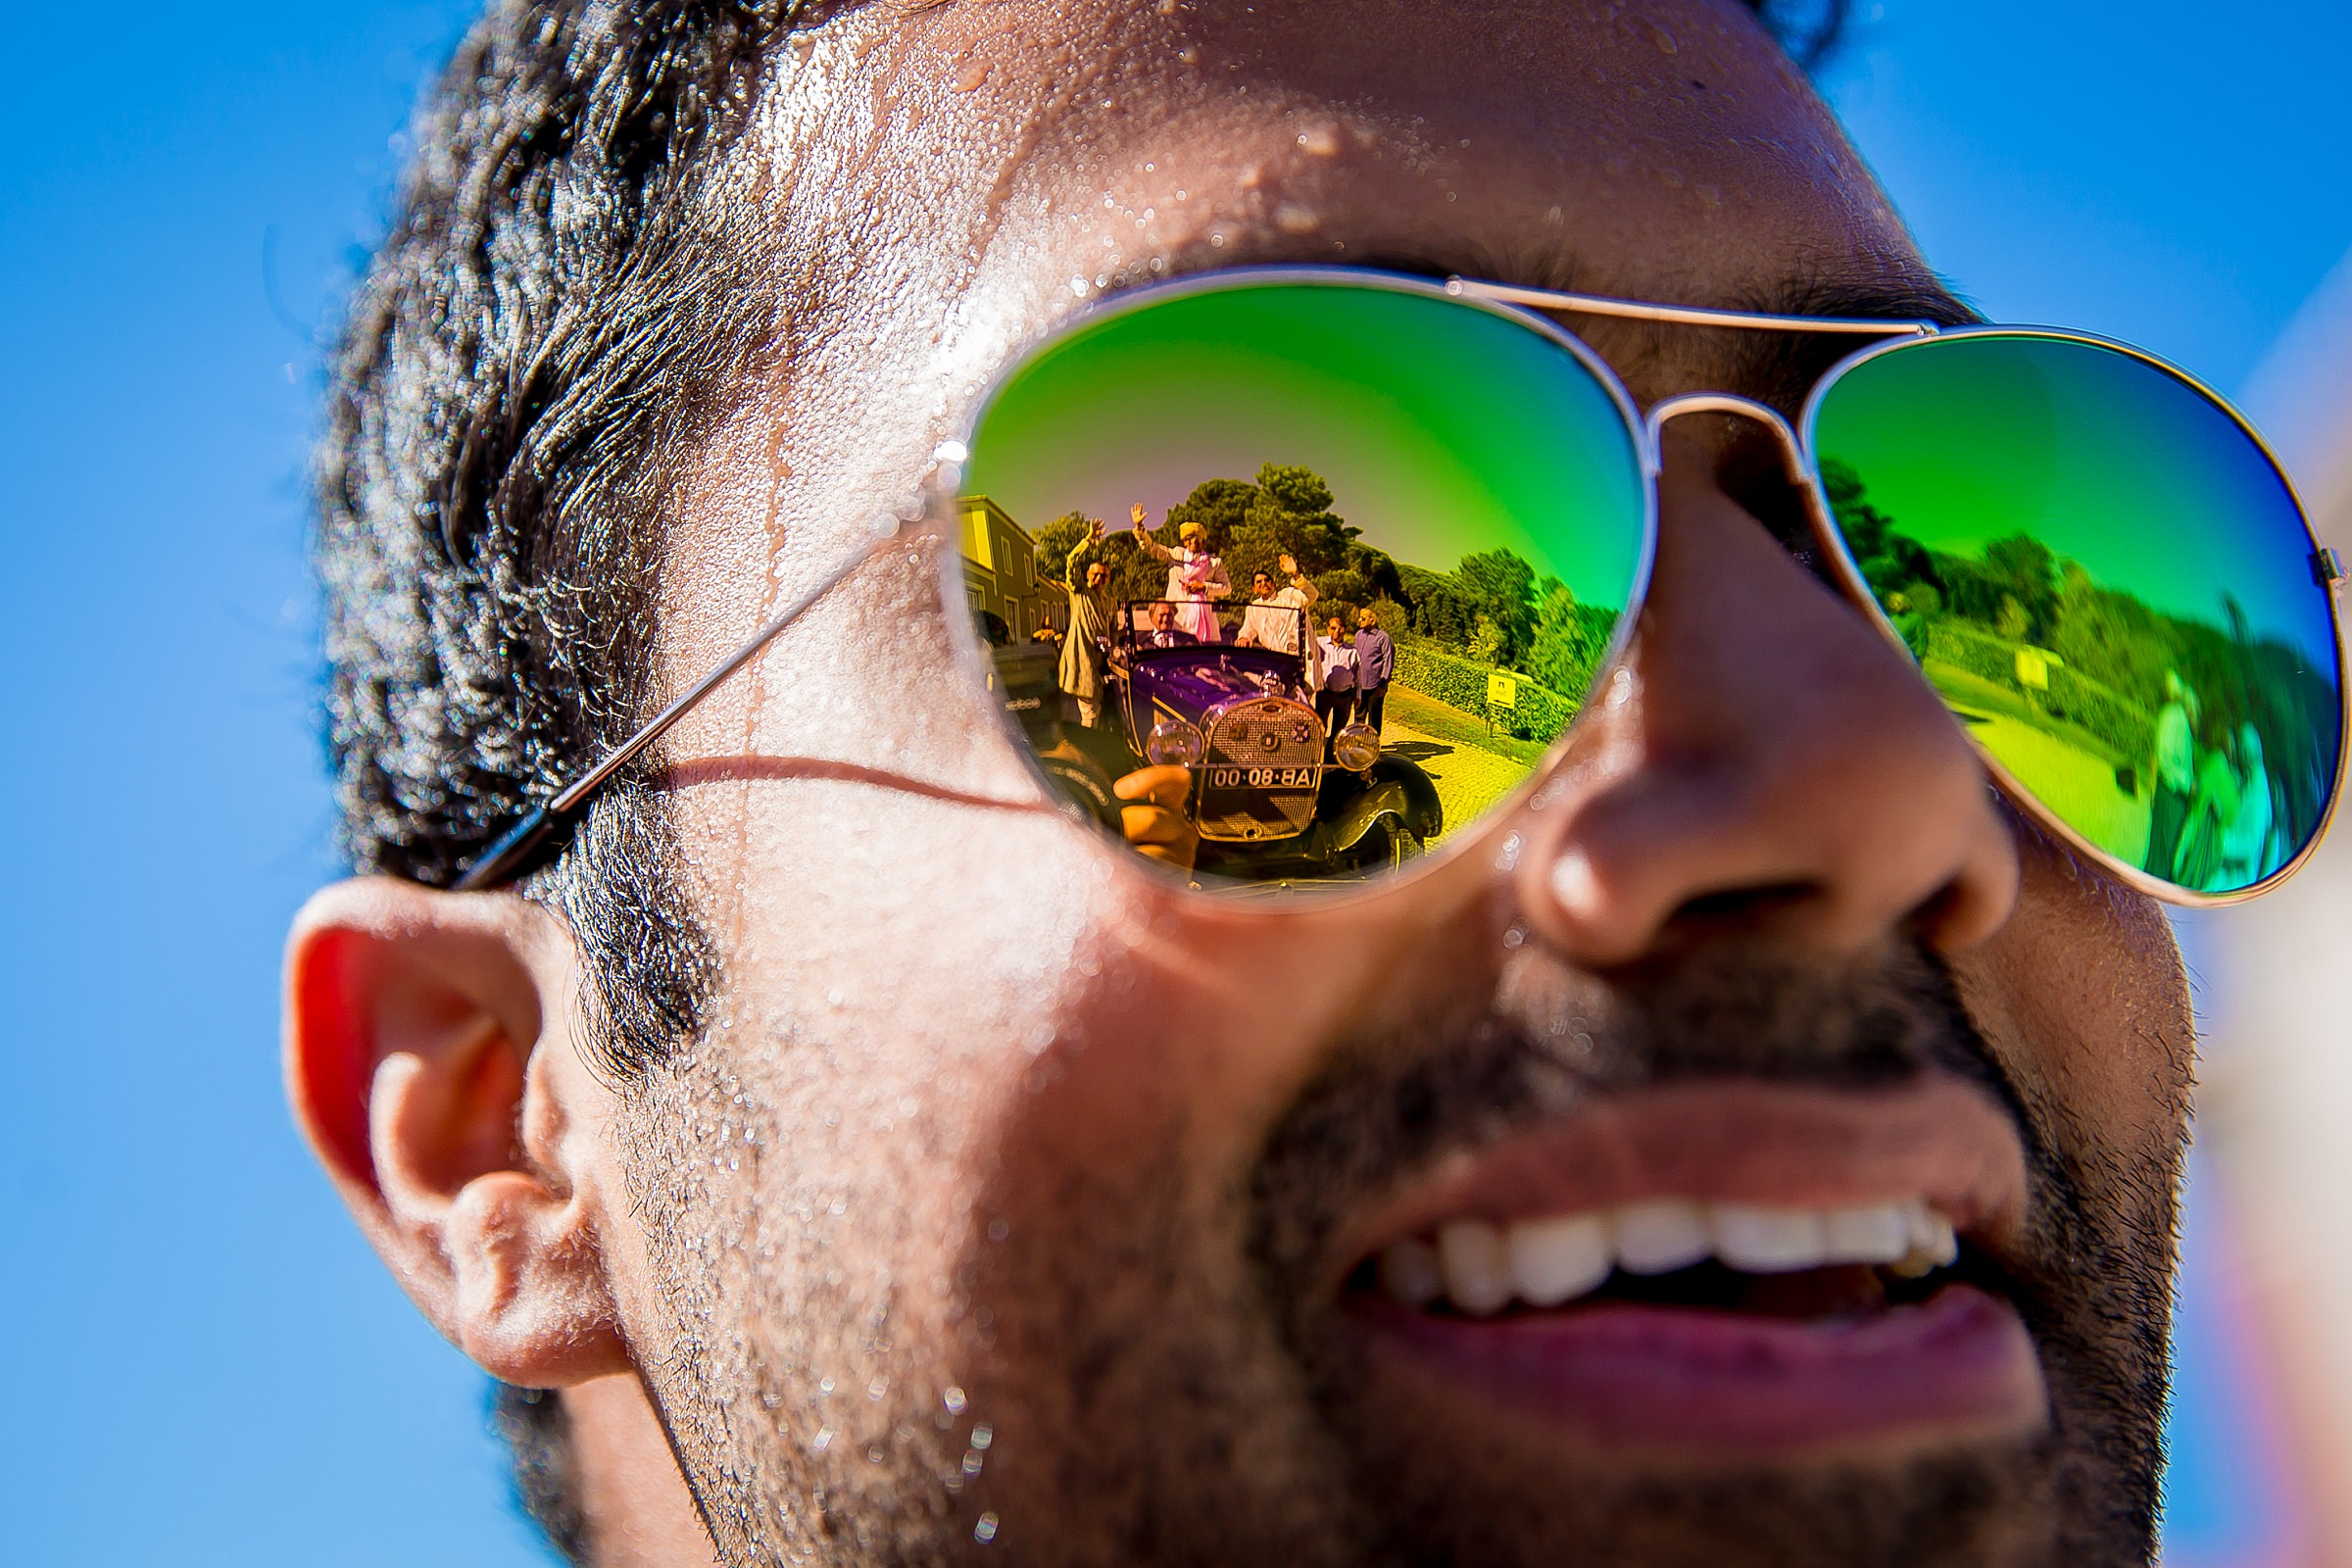 sunglasses-reflection-of-well-wishers-in-vintage-auto-apresh-chavda-photography